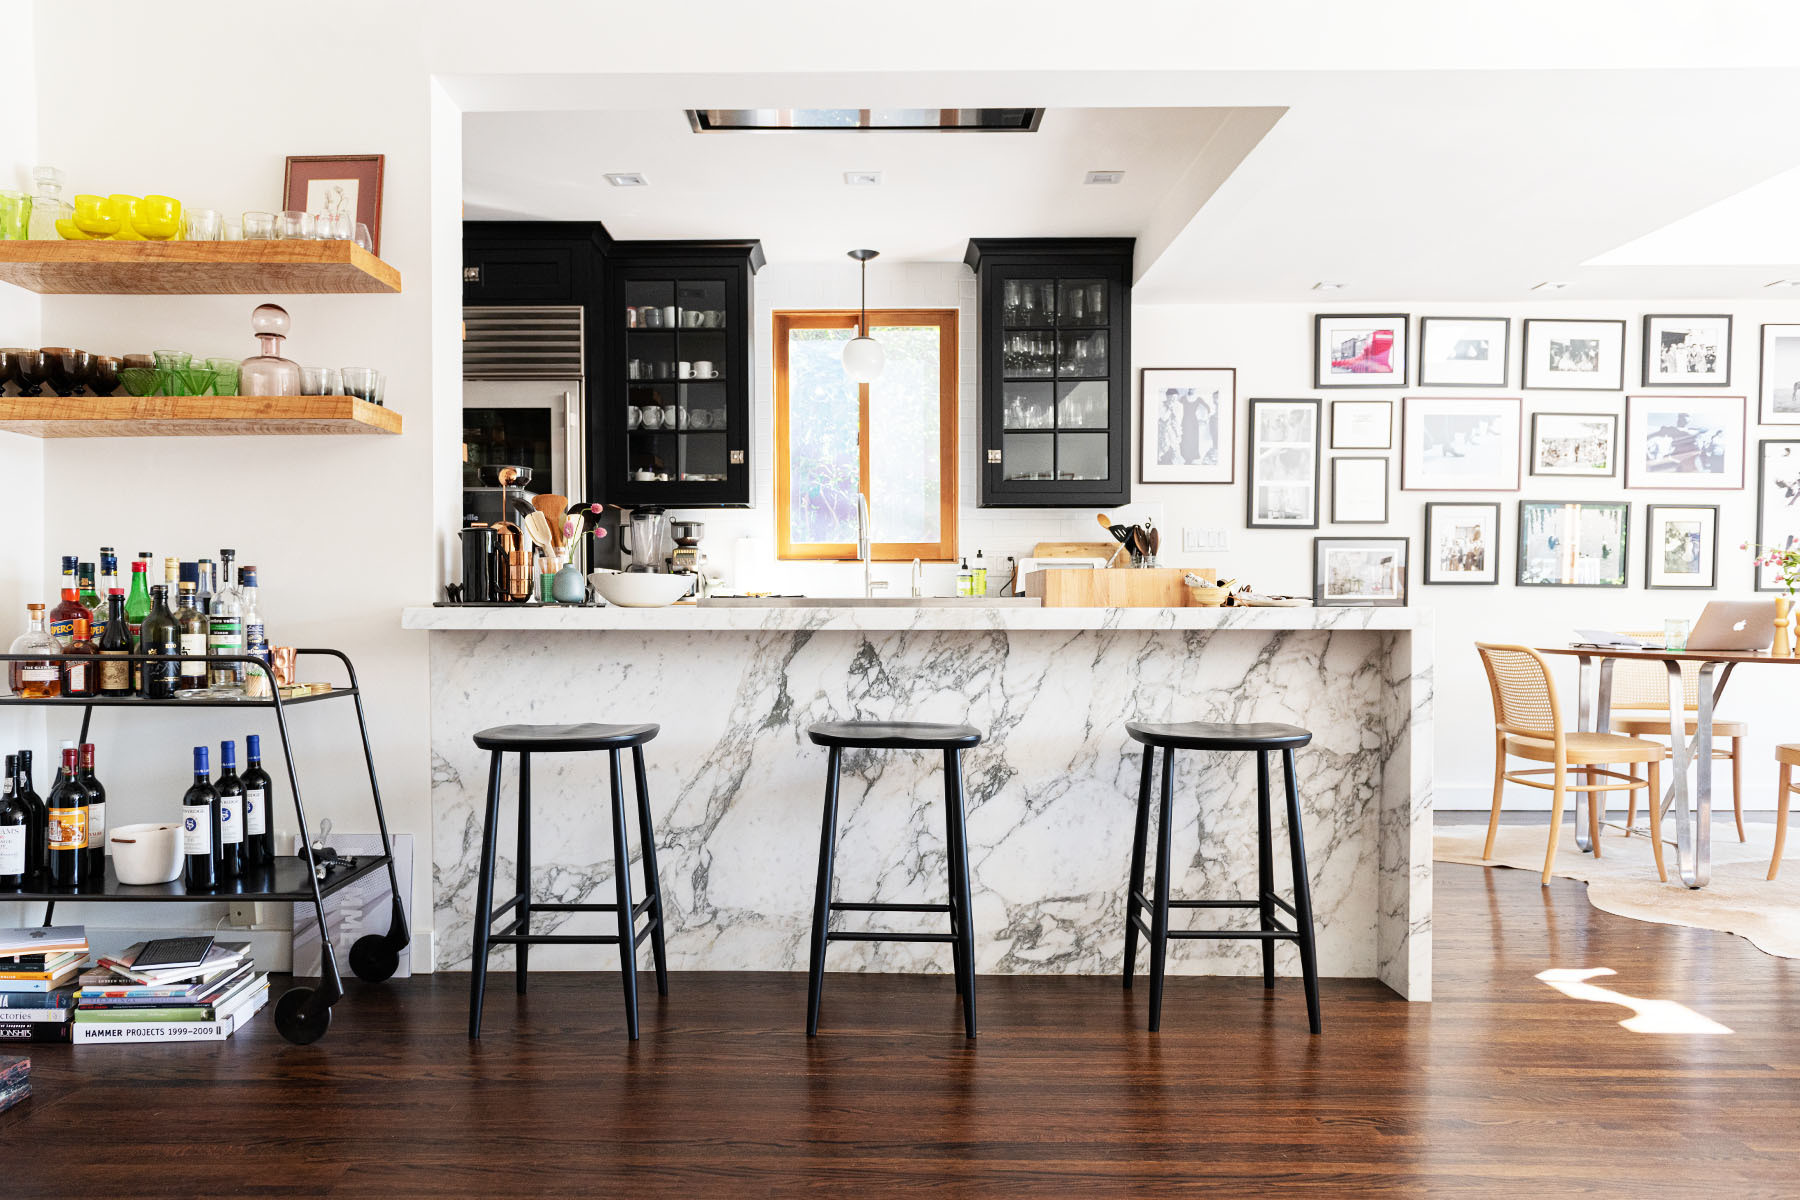 Eyewear designer Kyly Rabin fills her Silver Lake home with a refreshing blend of minmal furniture and family heirlooms. Viking, Miele, Sub-Zero Wolf, Breville Appliances | Custom Cabinetry | Custom Marble Kitchen Island | A+R Bar Stools | Custom Beechwood Floating Shelves | Roost Bar Cart | Tom Dixon Assorted Barware | Cedar & Moss Light Fixture | Design Within Reach Dining Chairs | Lawson Fenning Dining Table | Vintage Frames.